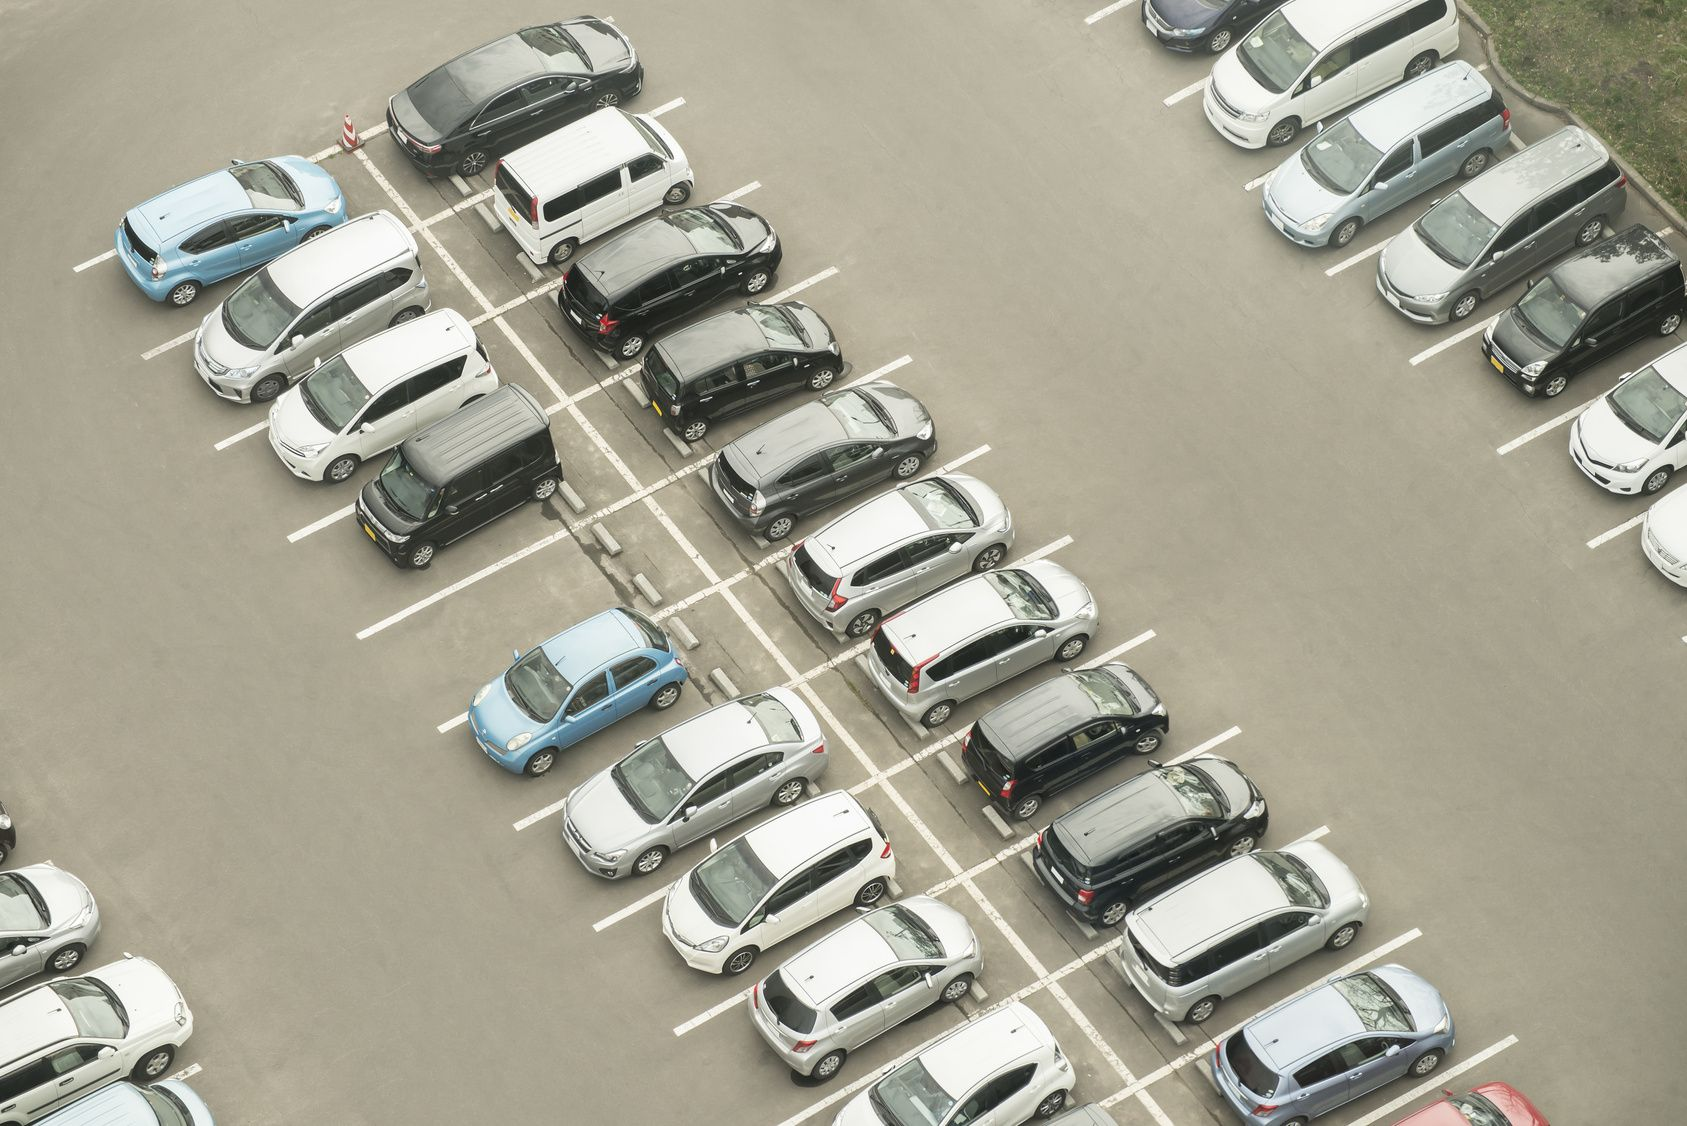 Resolve luton airport parking issues and leave your car in safe parking at luton airport gives passengers hassle free car parking experience luton car parking is offered with cheap deals to meet the low budget easily kristyandbryce Gallery